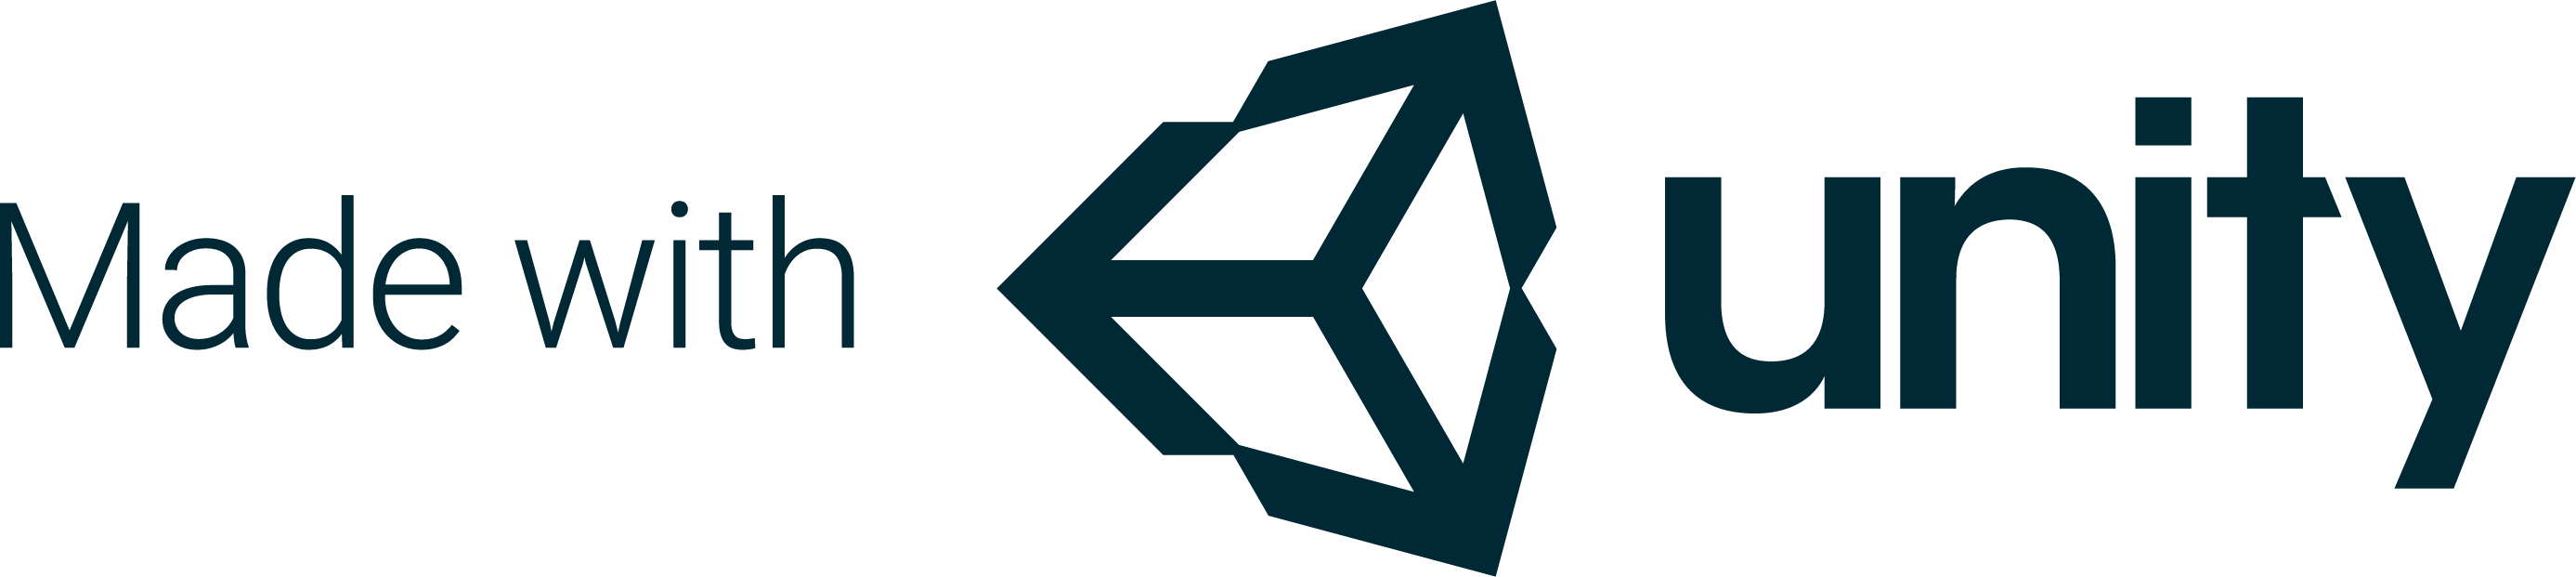 Unity logo png. Home real typed code